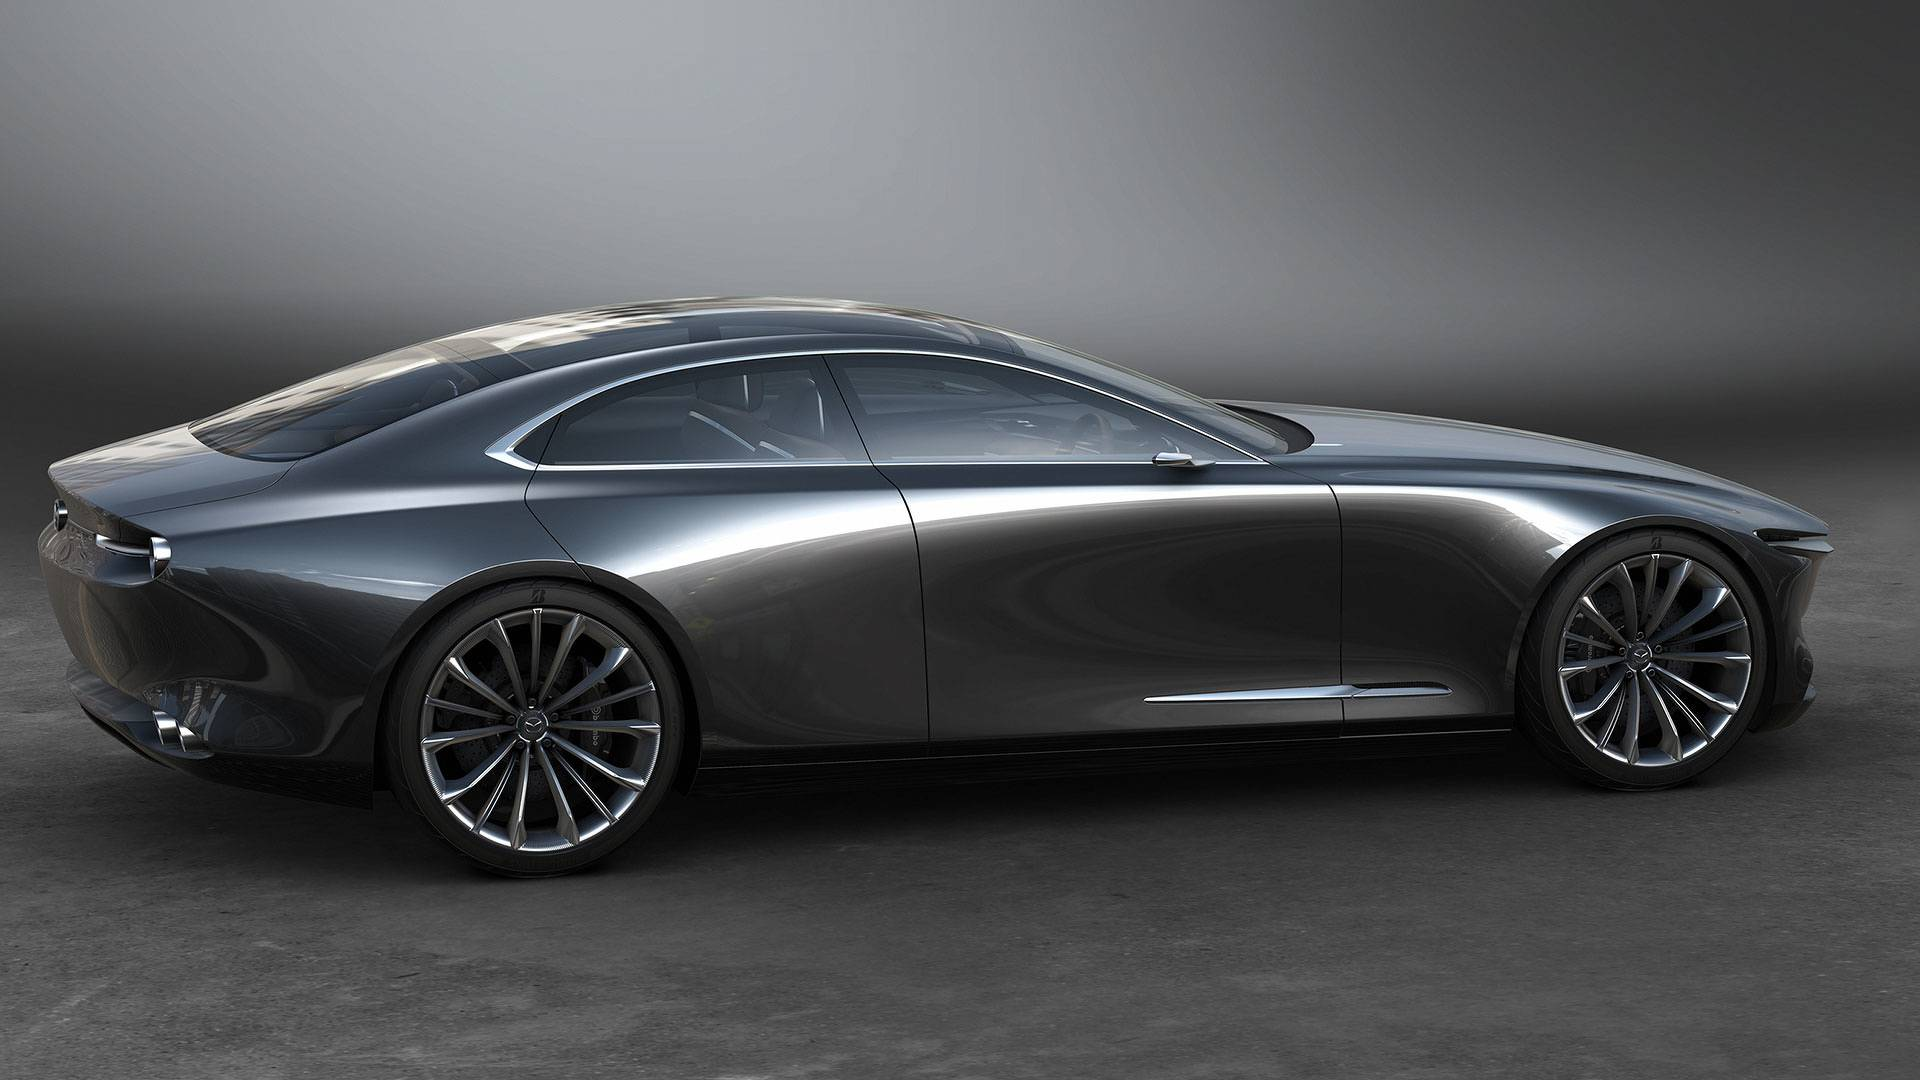 The new Mazda6 launched next year, will become the explosive highlight of the Japanese brand 3